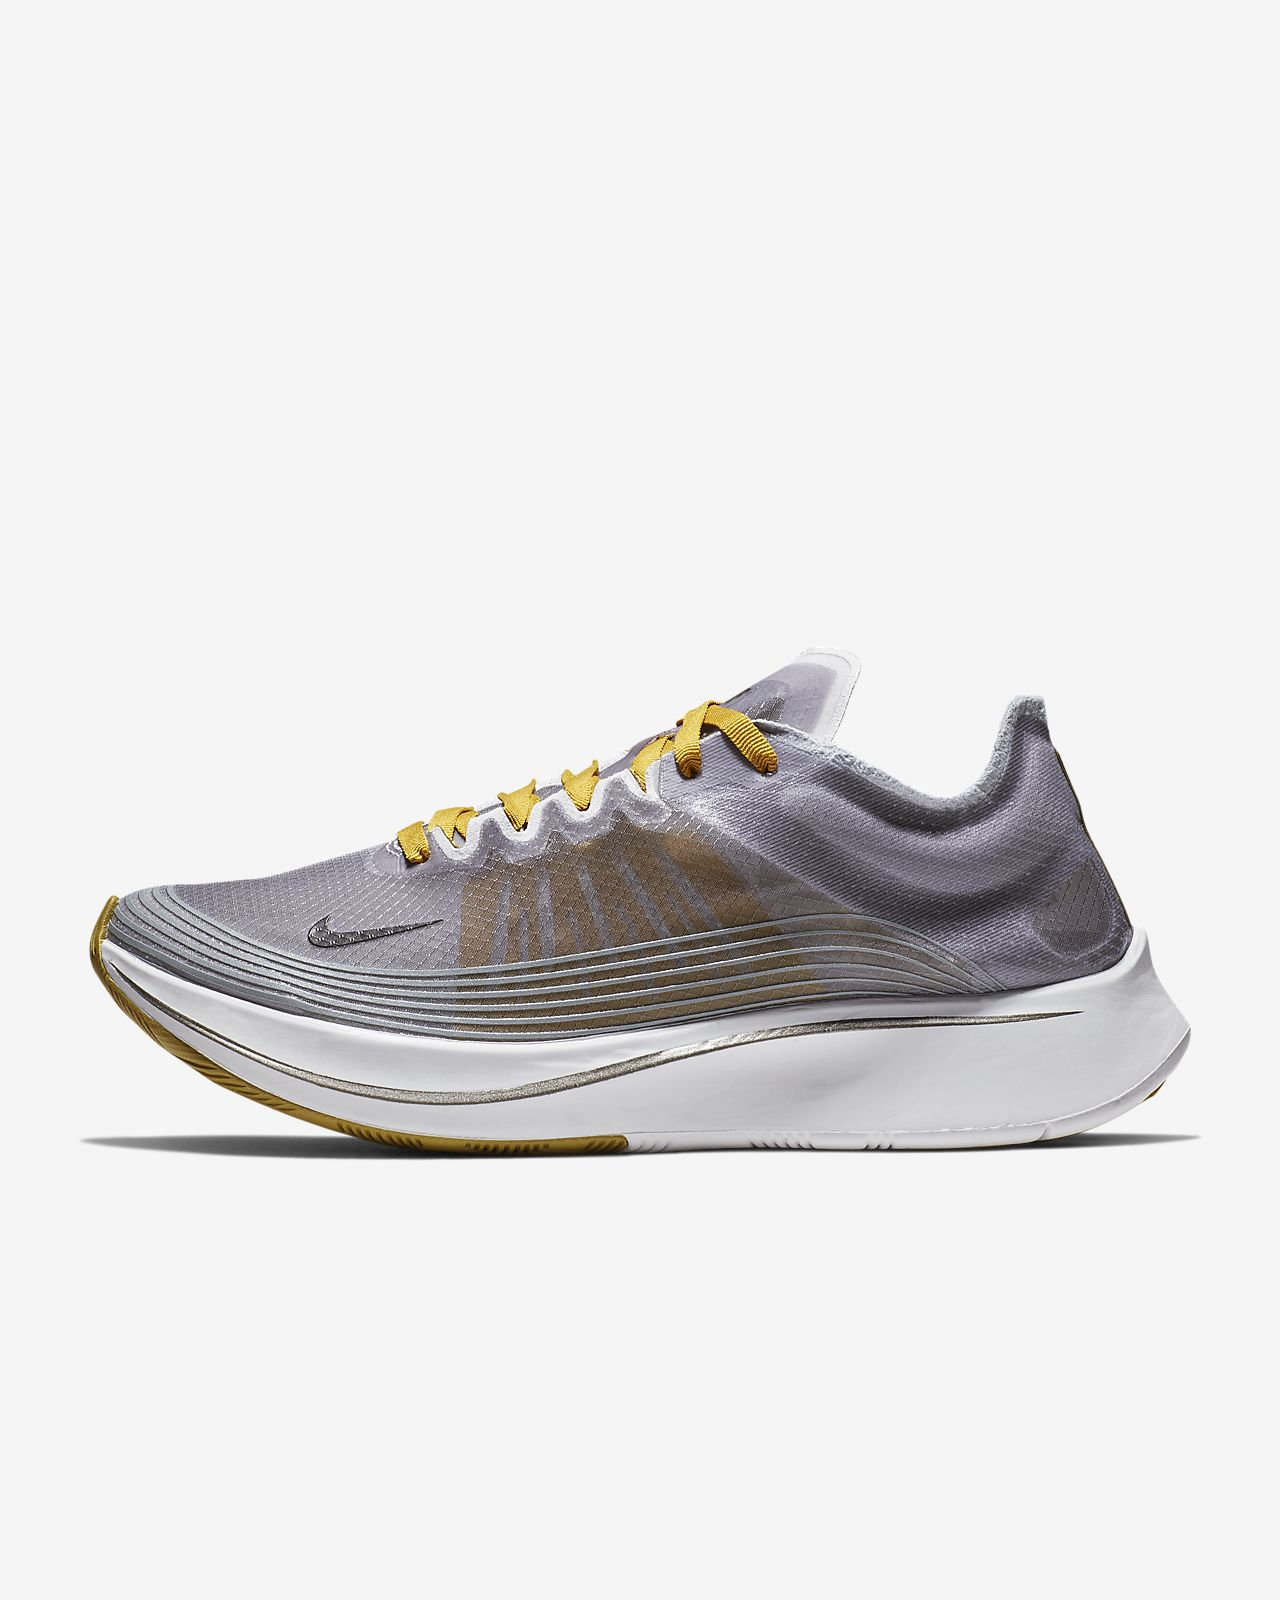 7ce1bb3a78ab Nike Zoom Fly SP Women s Running Shoe. Nike.com DK